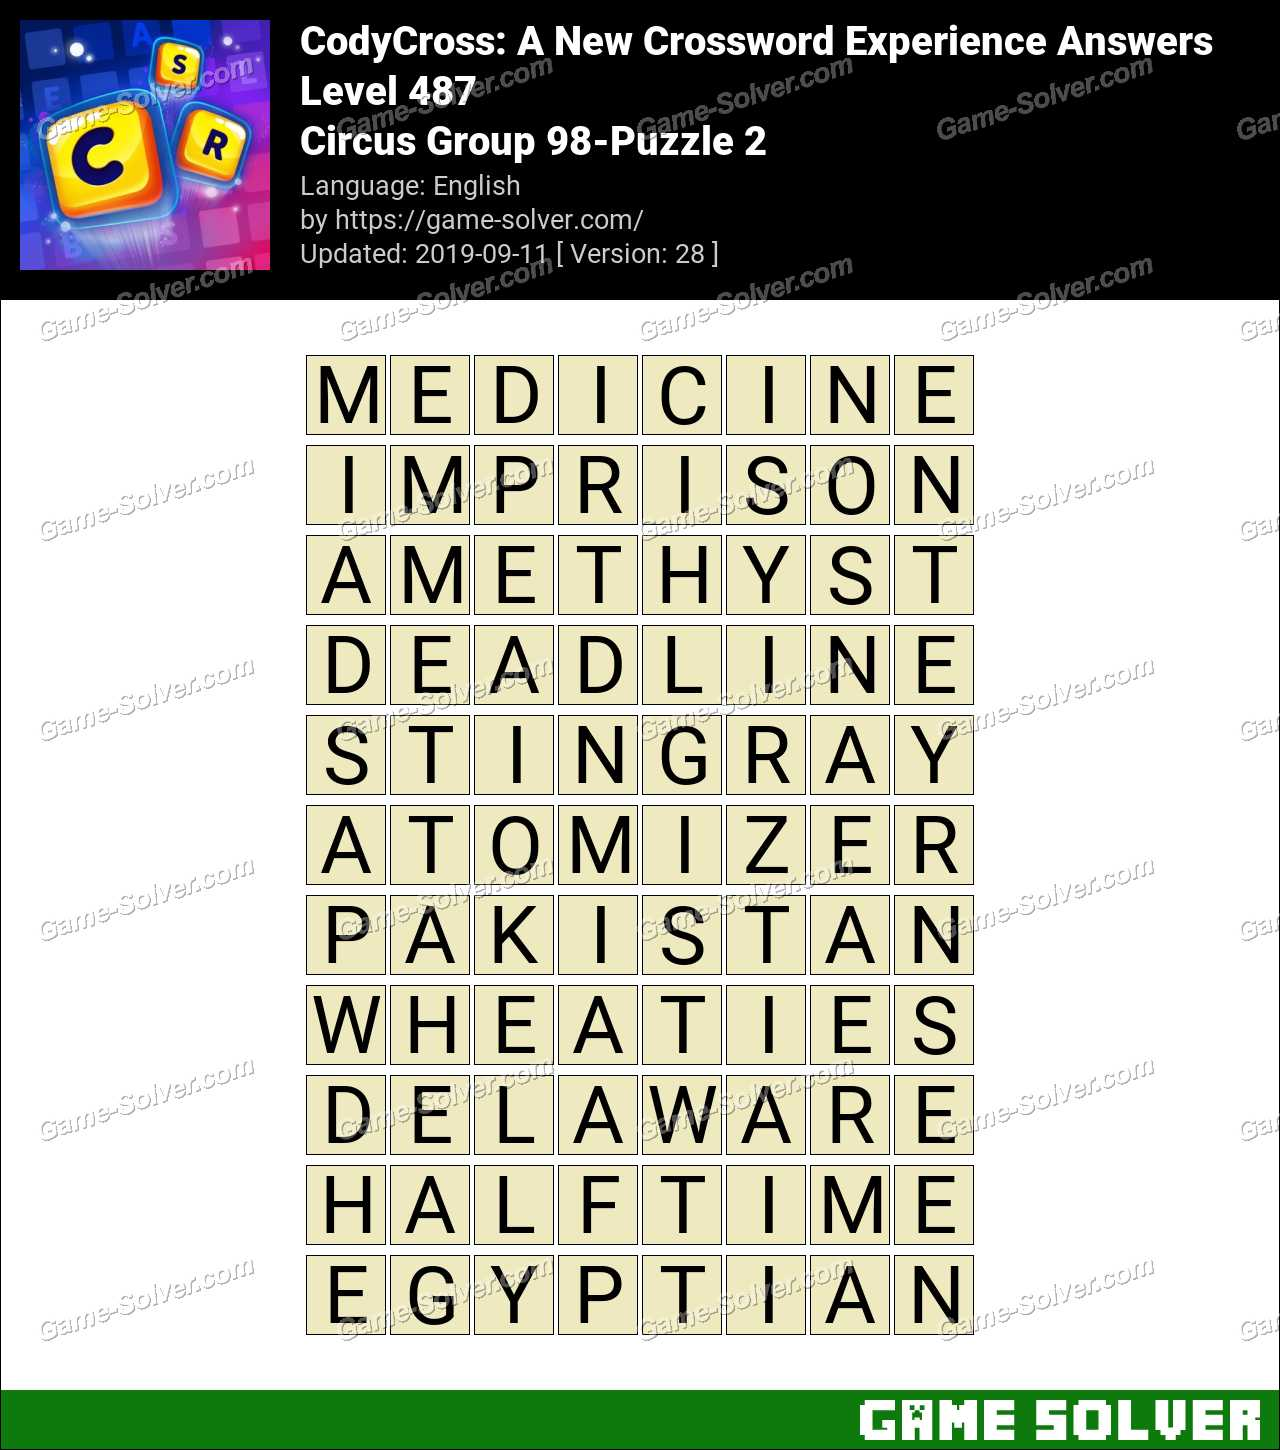 CodyCross Circus Group 98-Puzzle 2 Answers